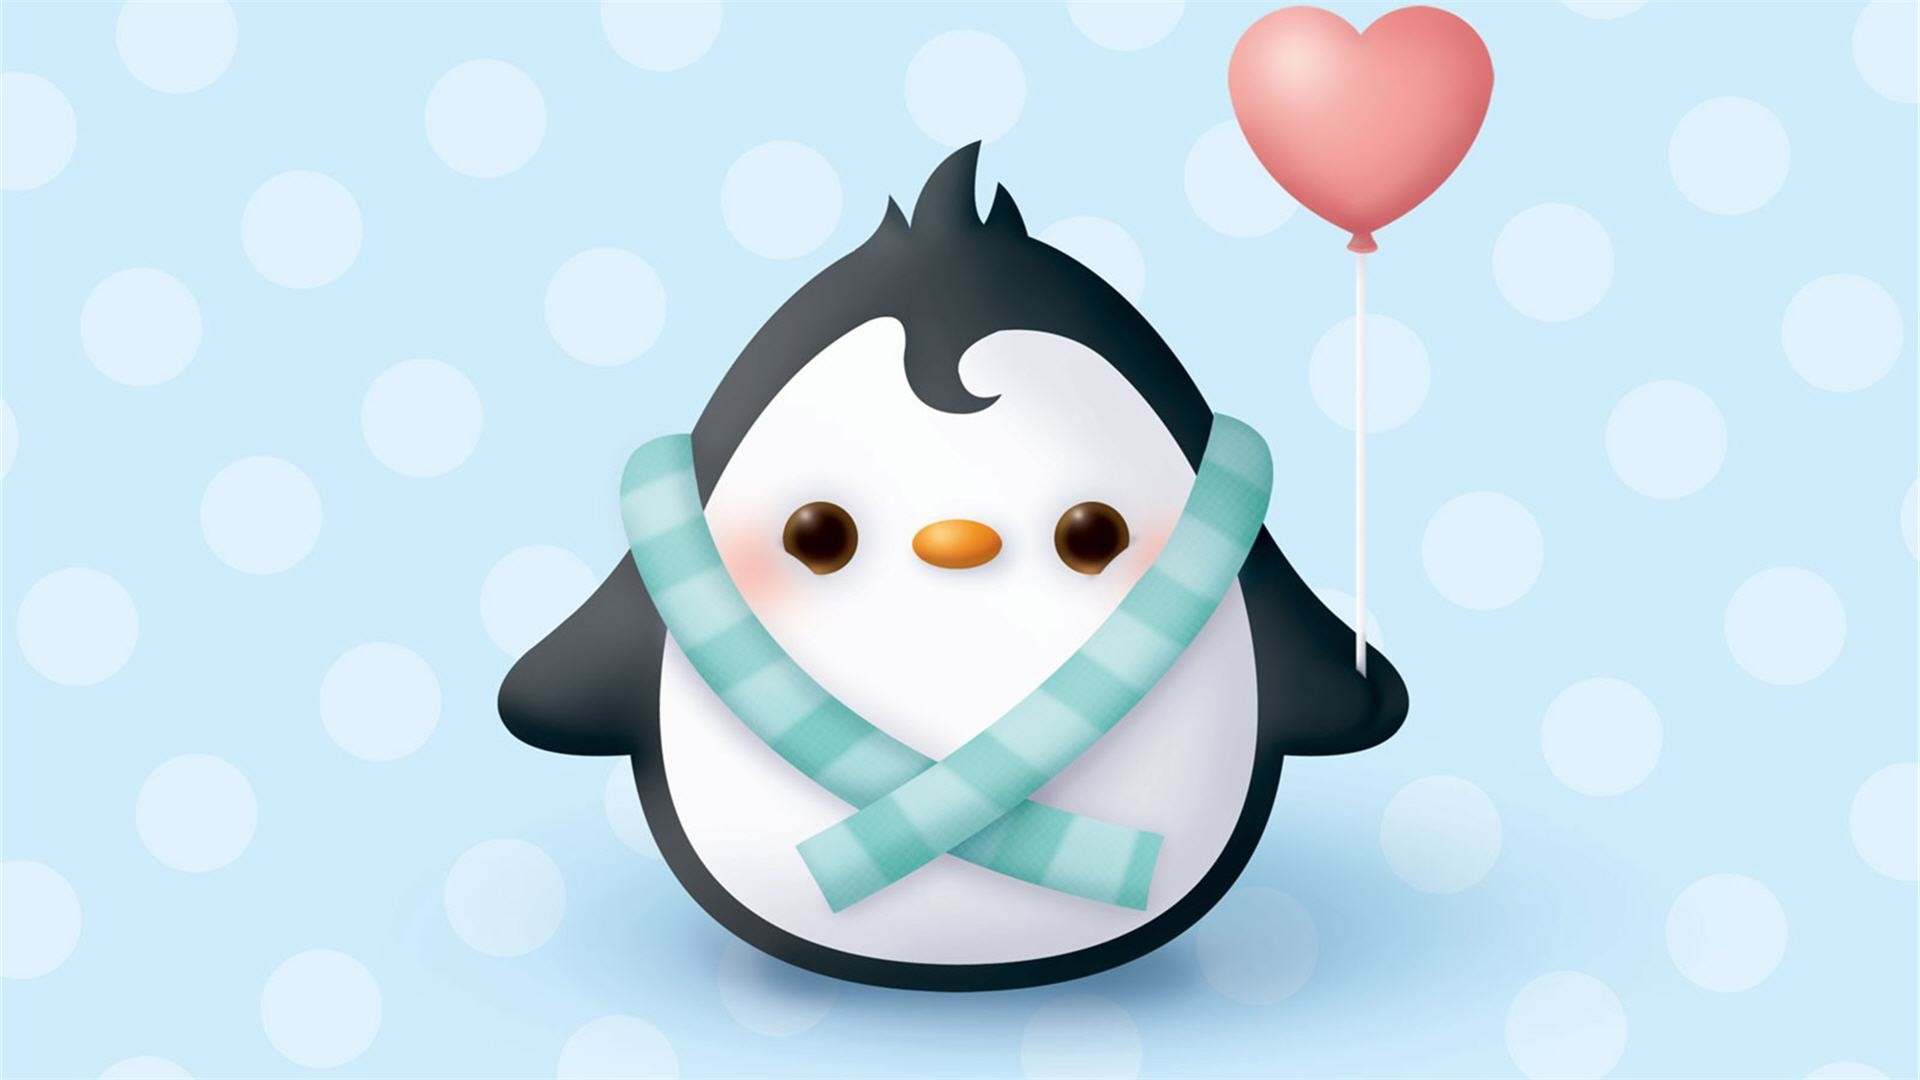 1920x1080 Cute Animated Penguins Wallpaper - ClipArt Best